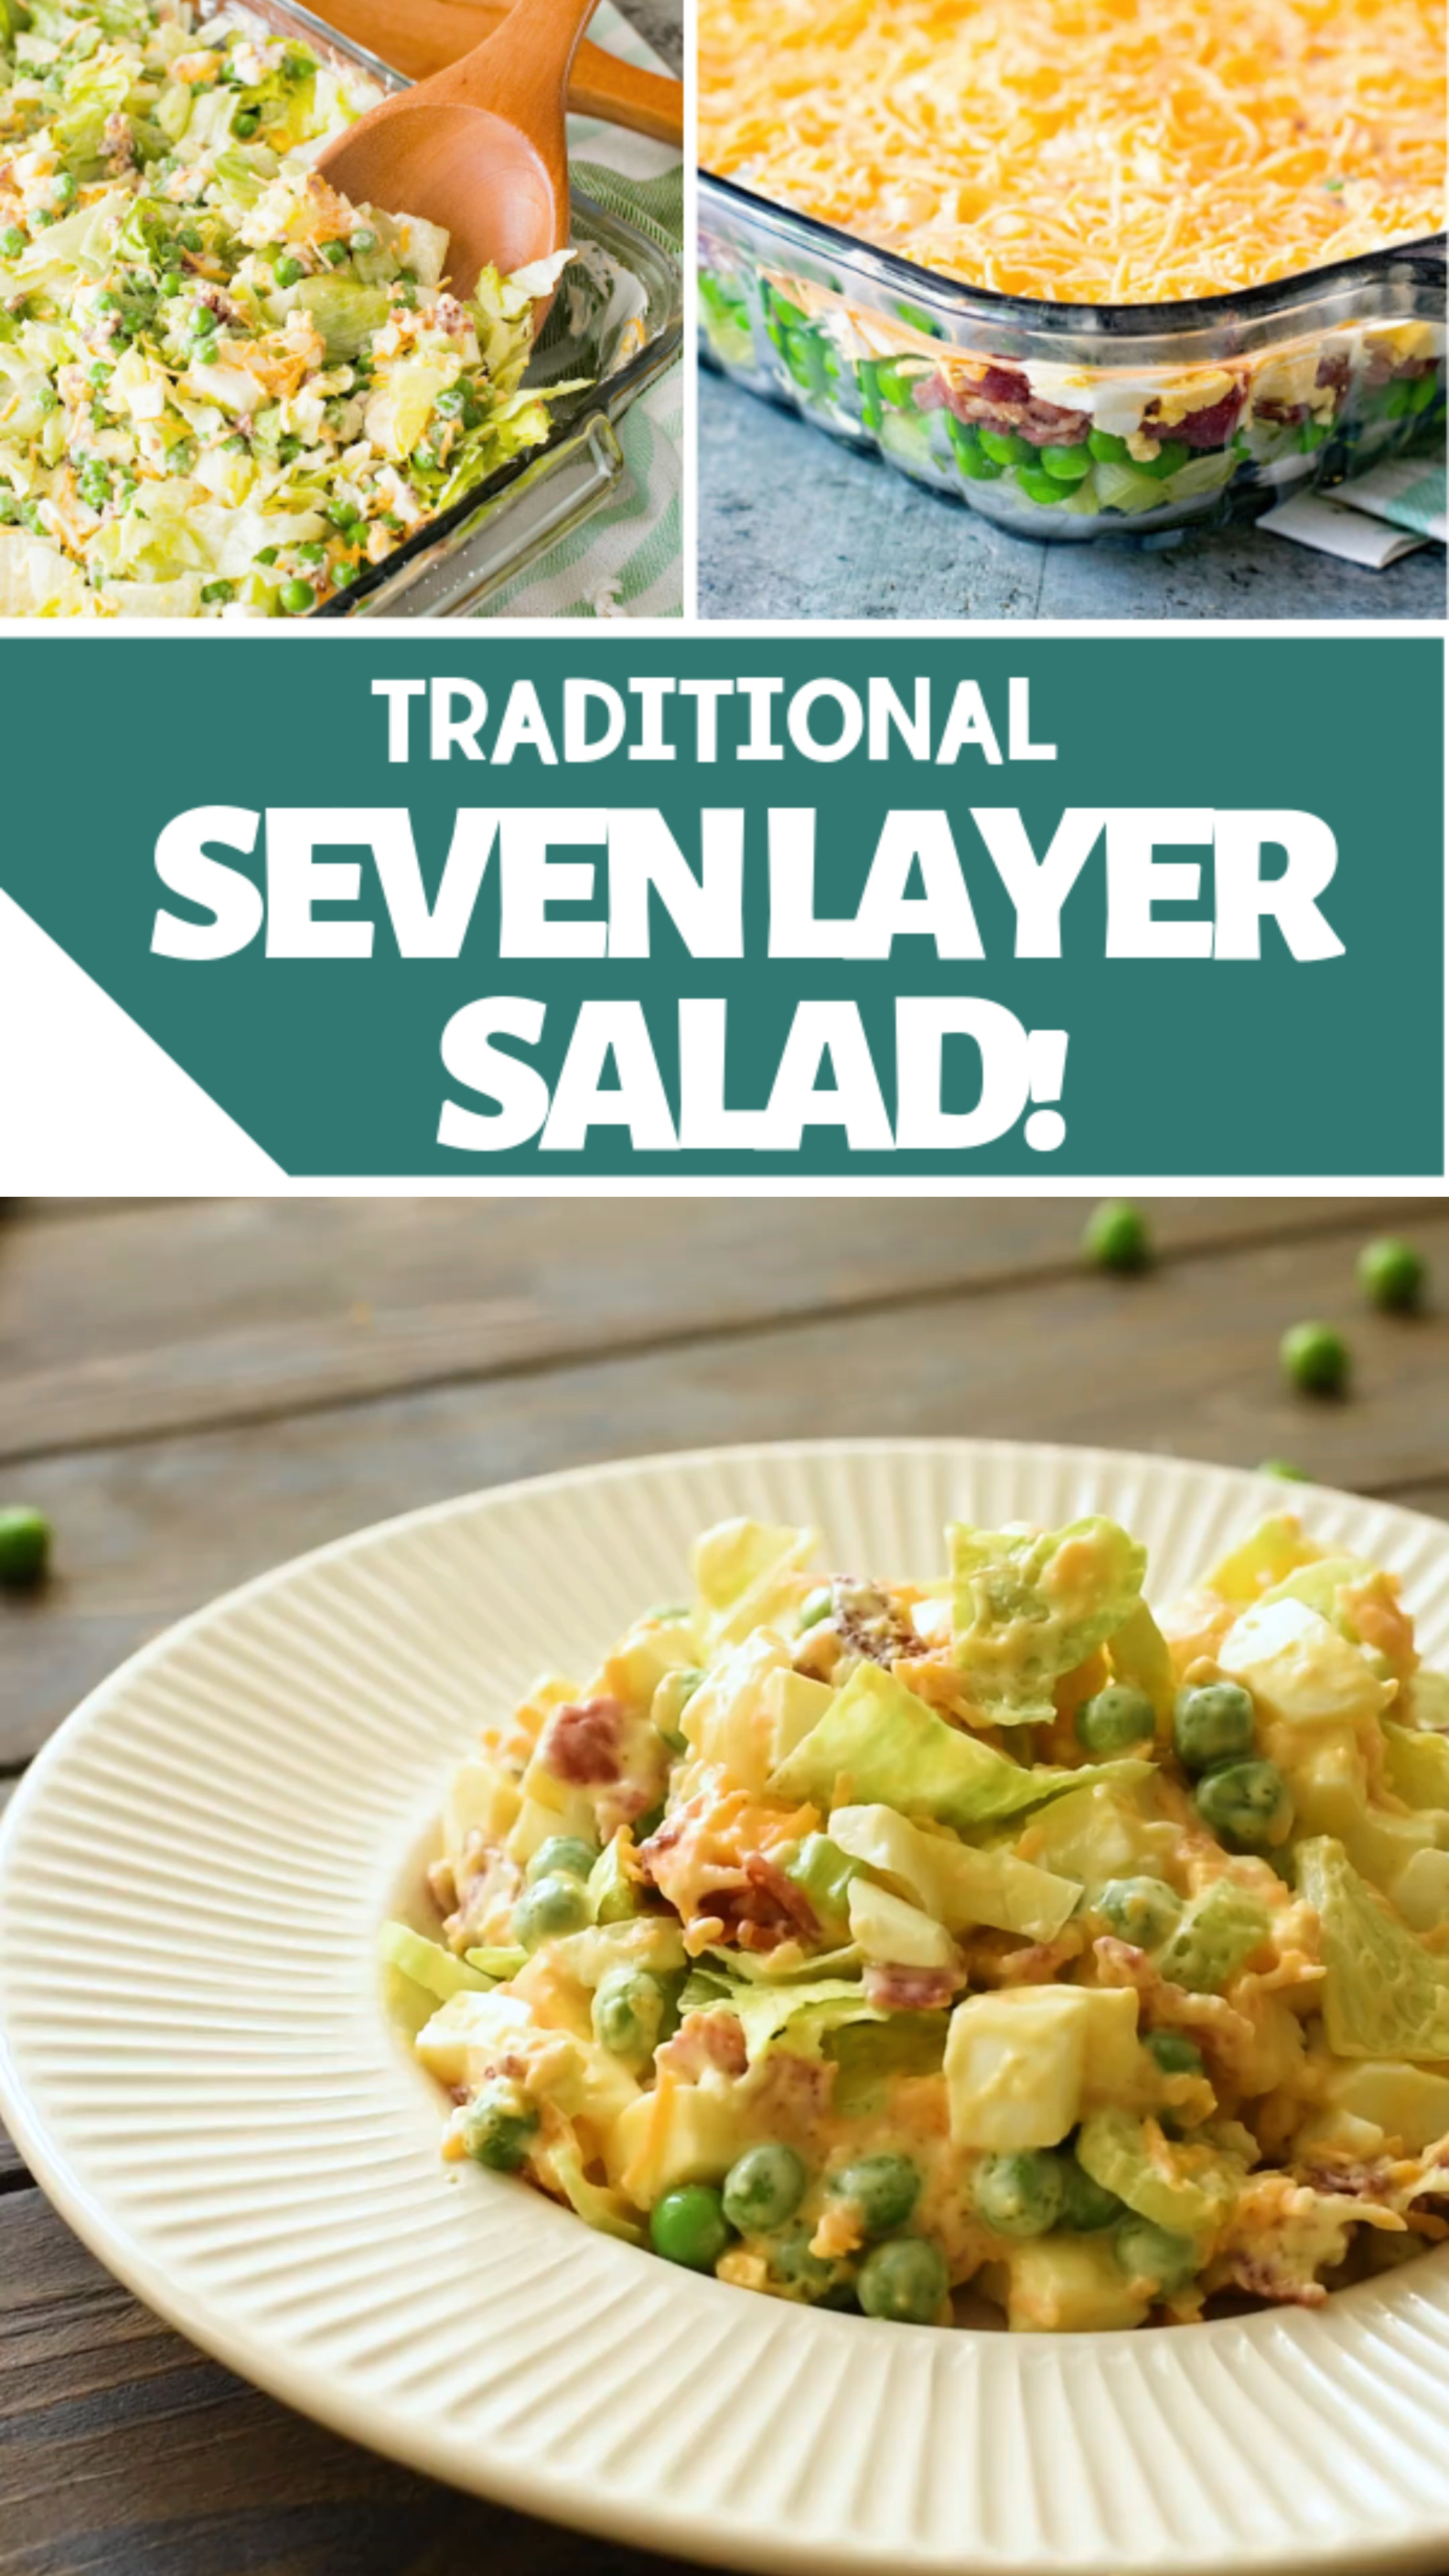 Traditional Seven Layer Salad Video Layered Salad Recipes Seven Layer Salad Layered Salad